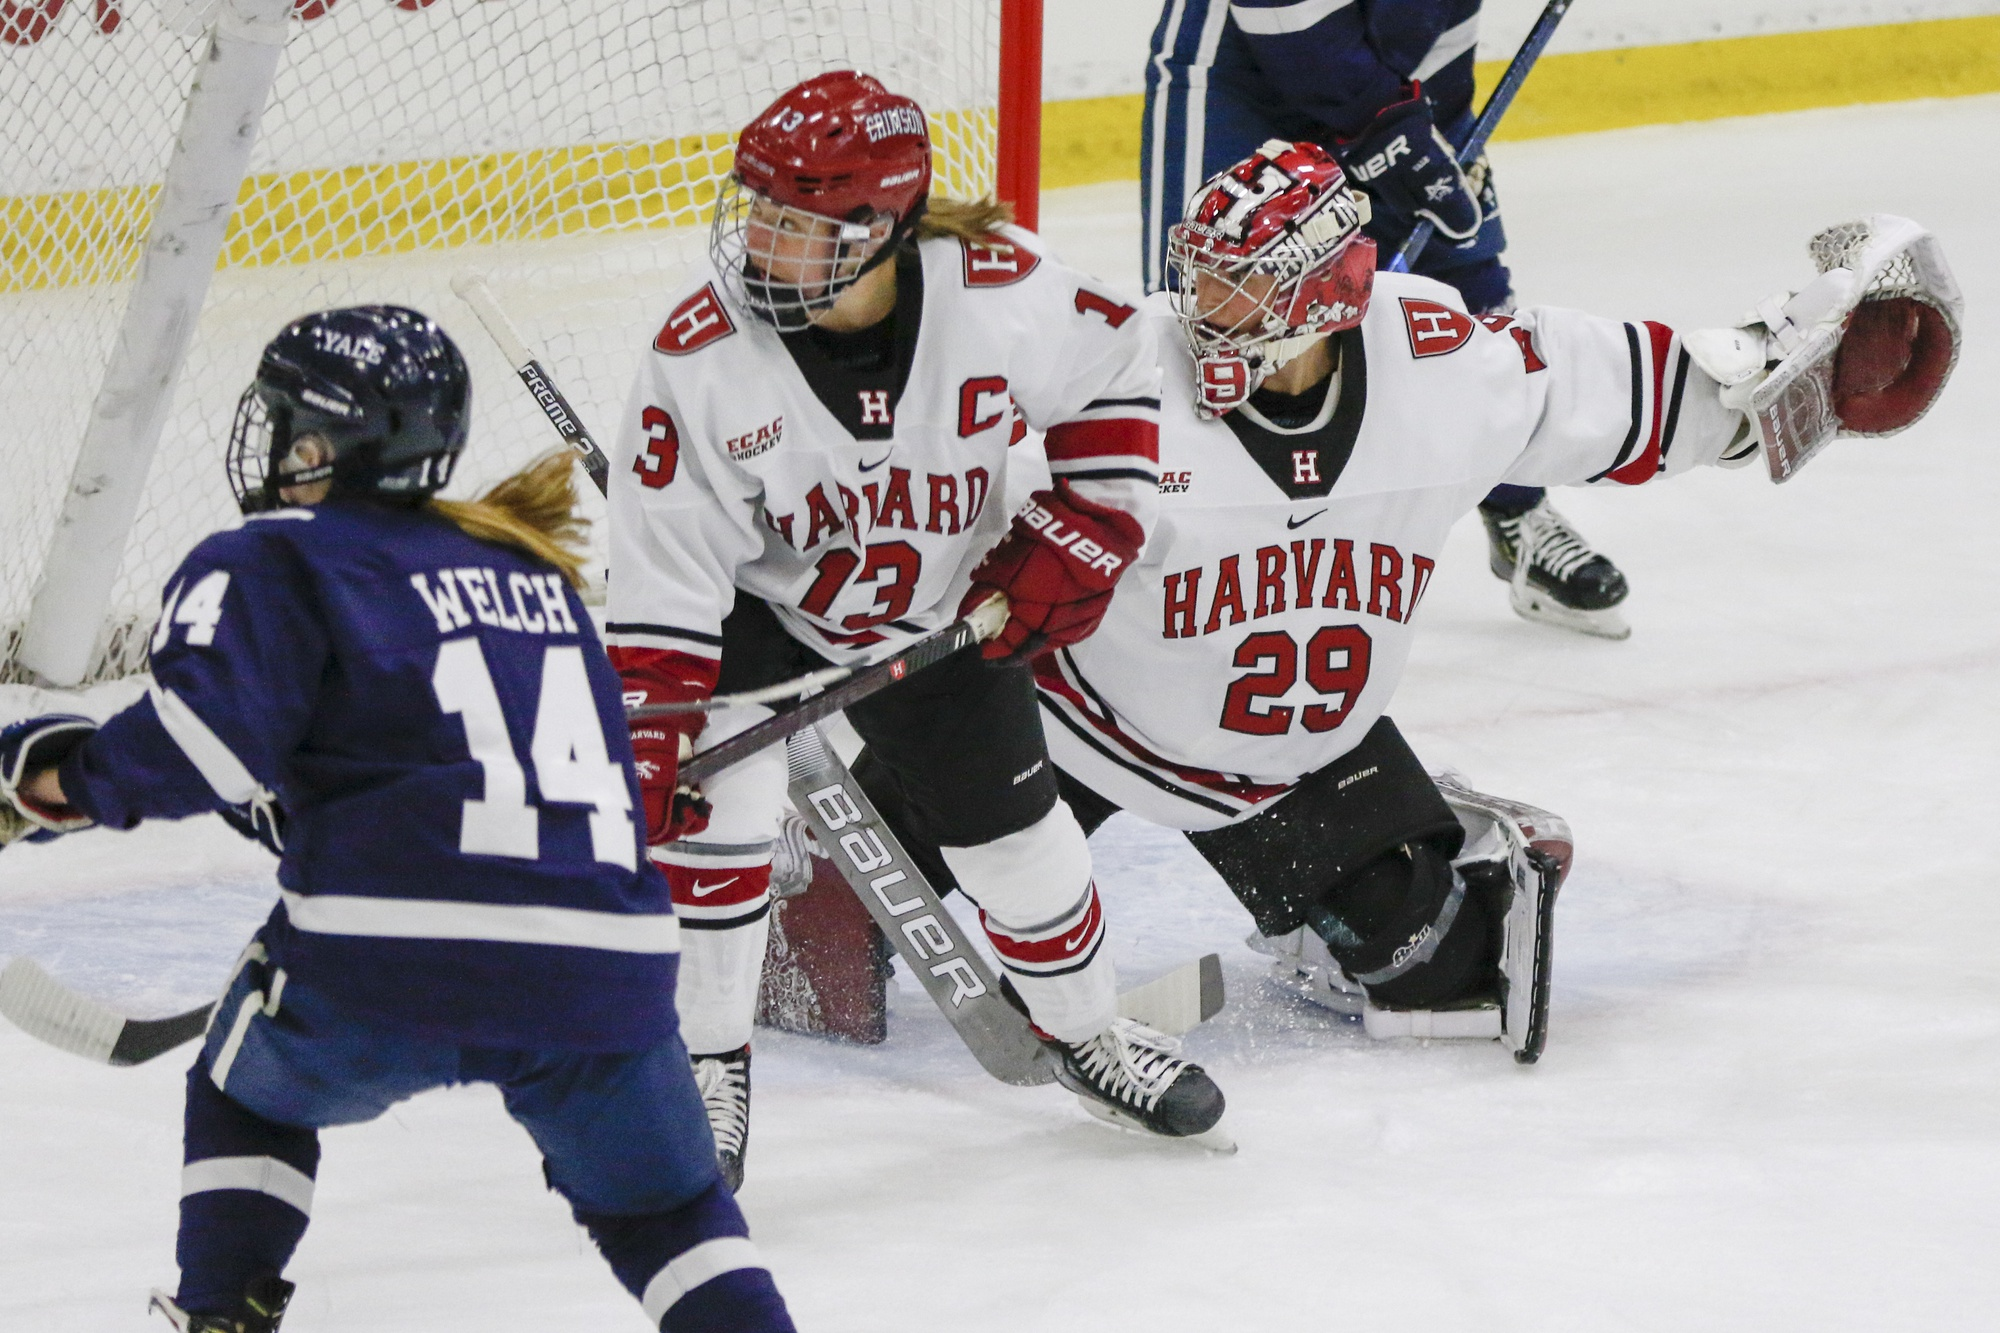 The Harvard defense rallies in front of its own net en route to putting together a 5-2 victory over Yale on Nov. 2.